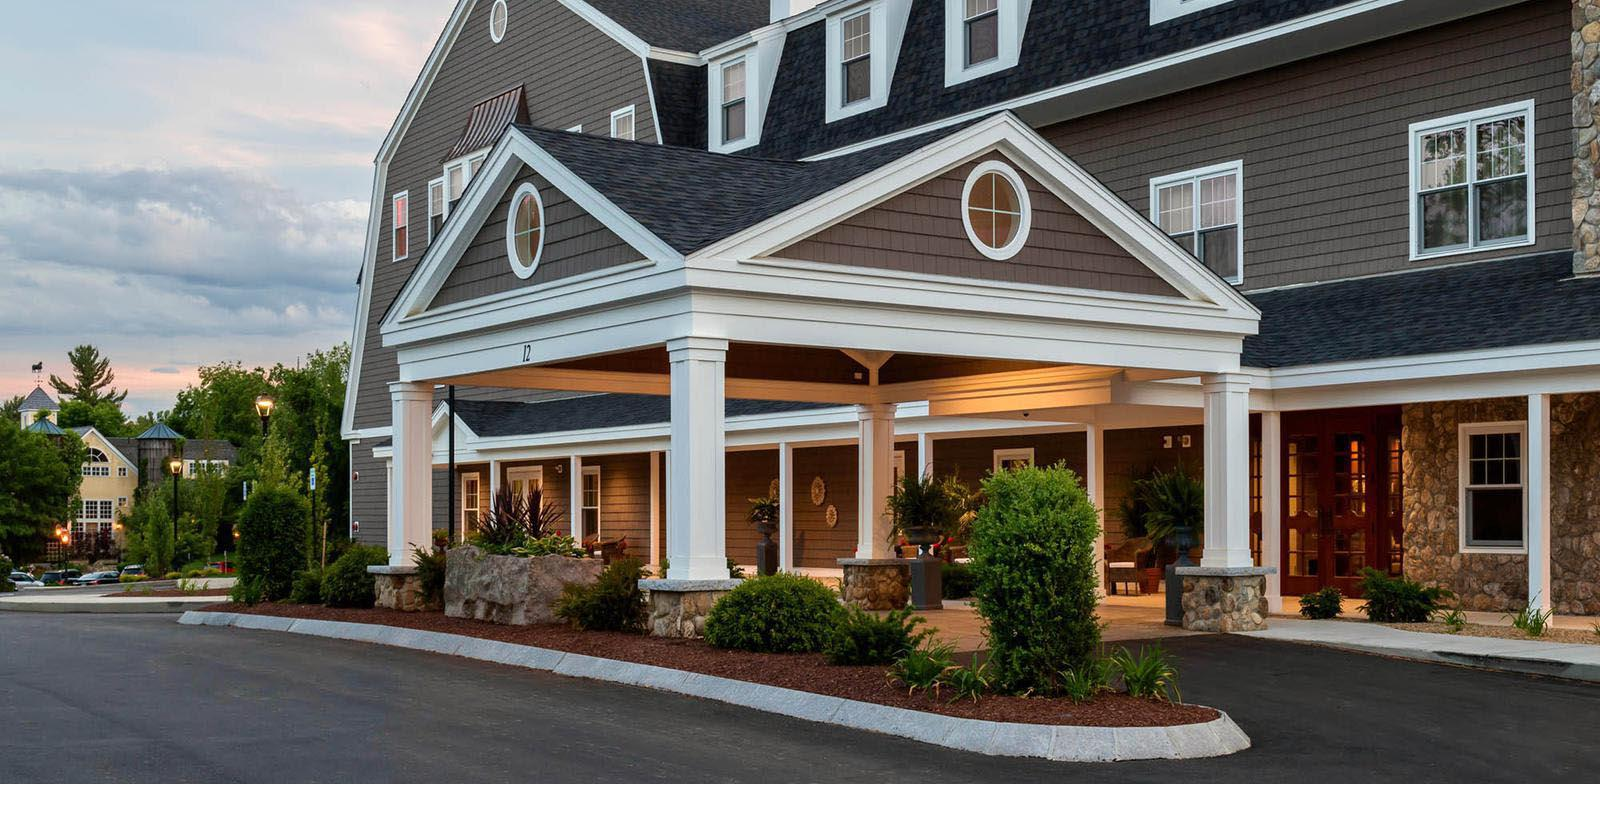 Image of Entrance The Bedford Village Inn, 1810, Member of Historic Hotels of America, in Bedford, New Hampshire, Special Offers, Discounted Rates, Families, Romantic Escape, Honeymoons, Anniversaries, Reunions